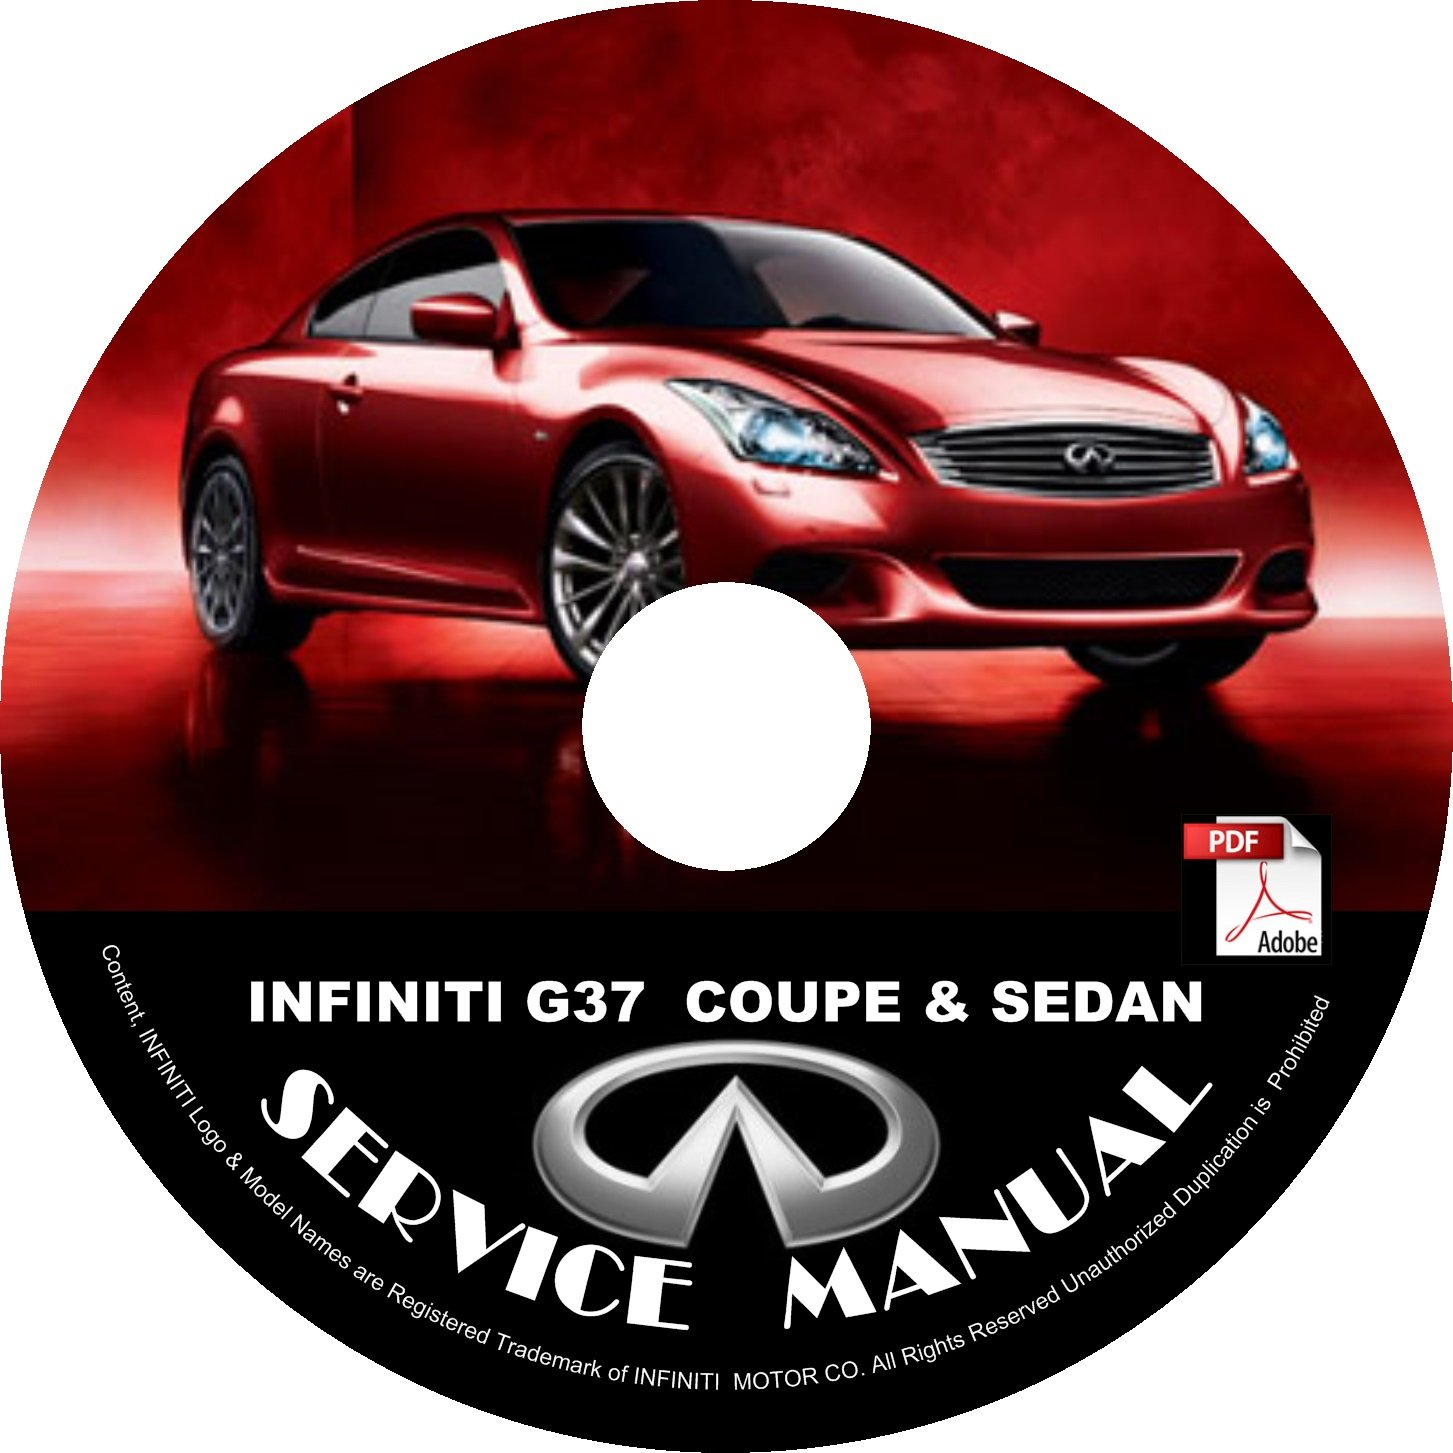 2012 '12 Infiniti G37 Factory Coupe & Sedan Service Repair Shop Manual on CD